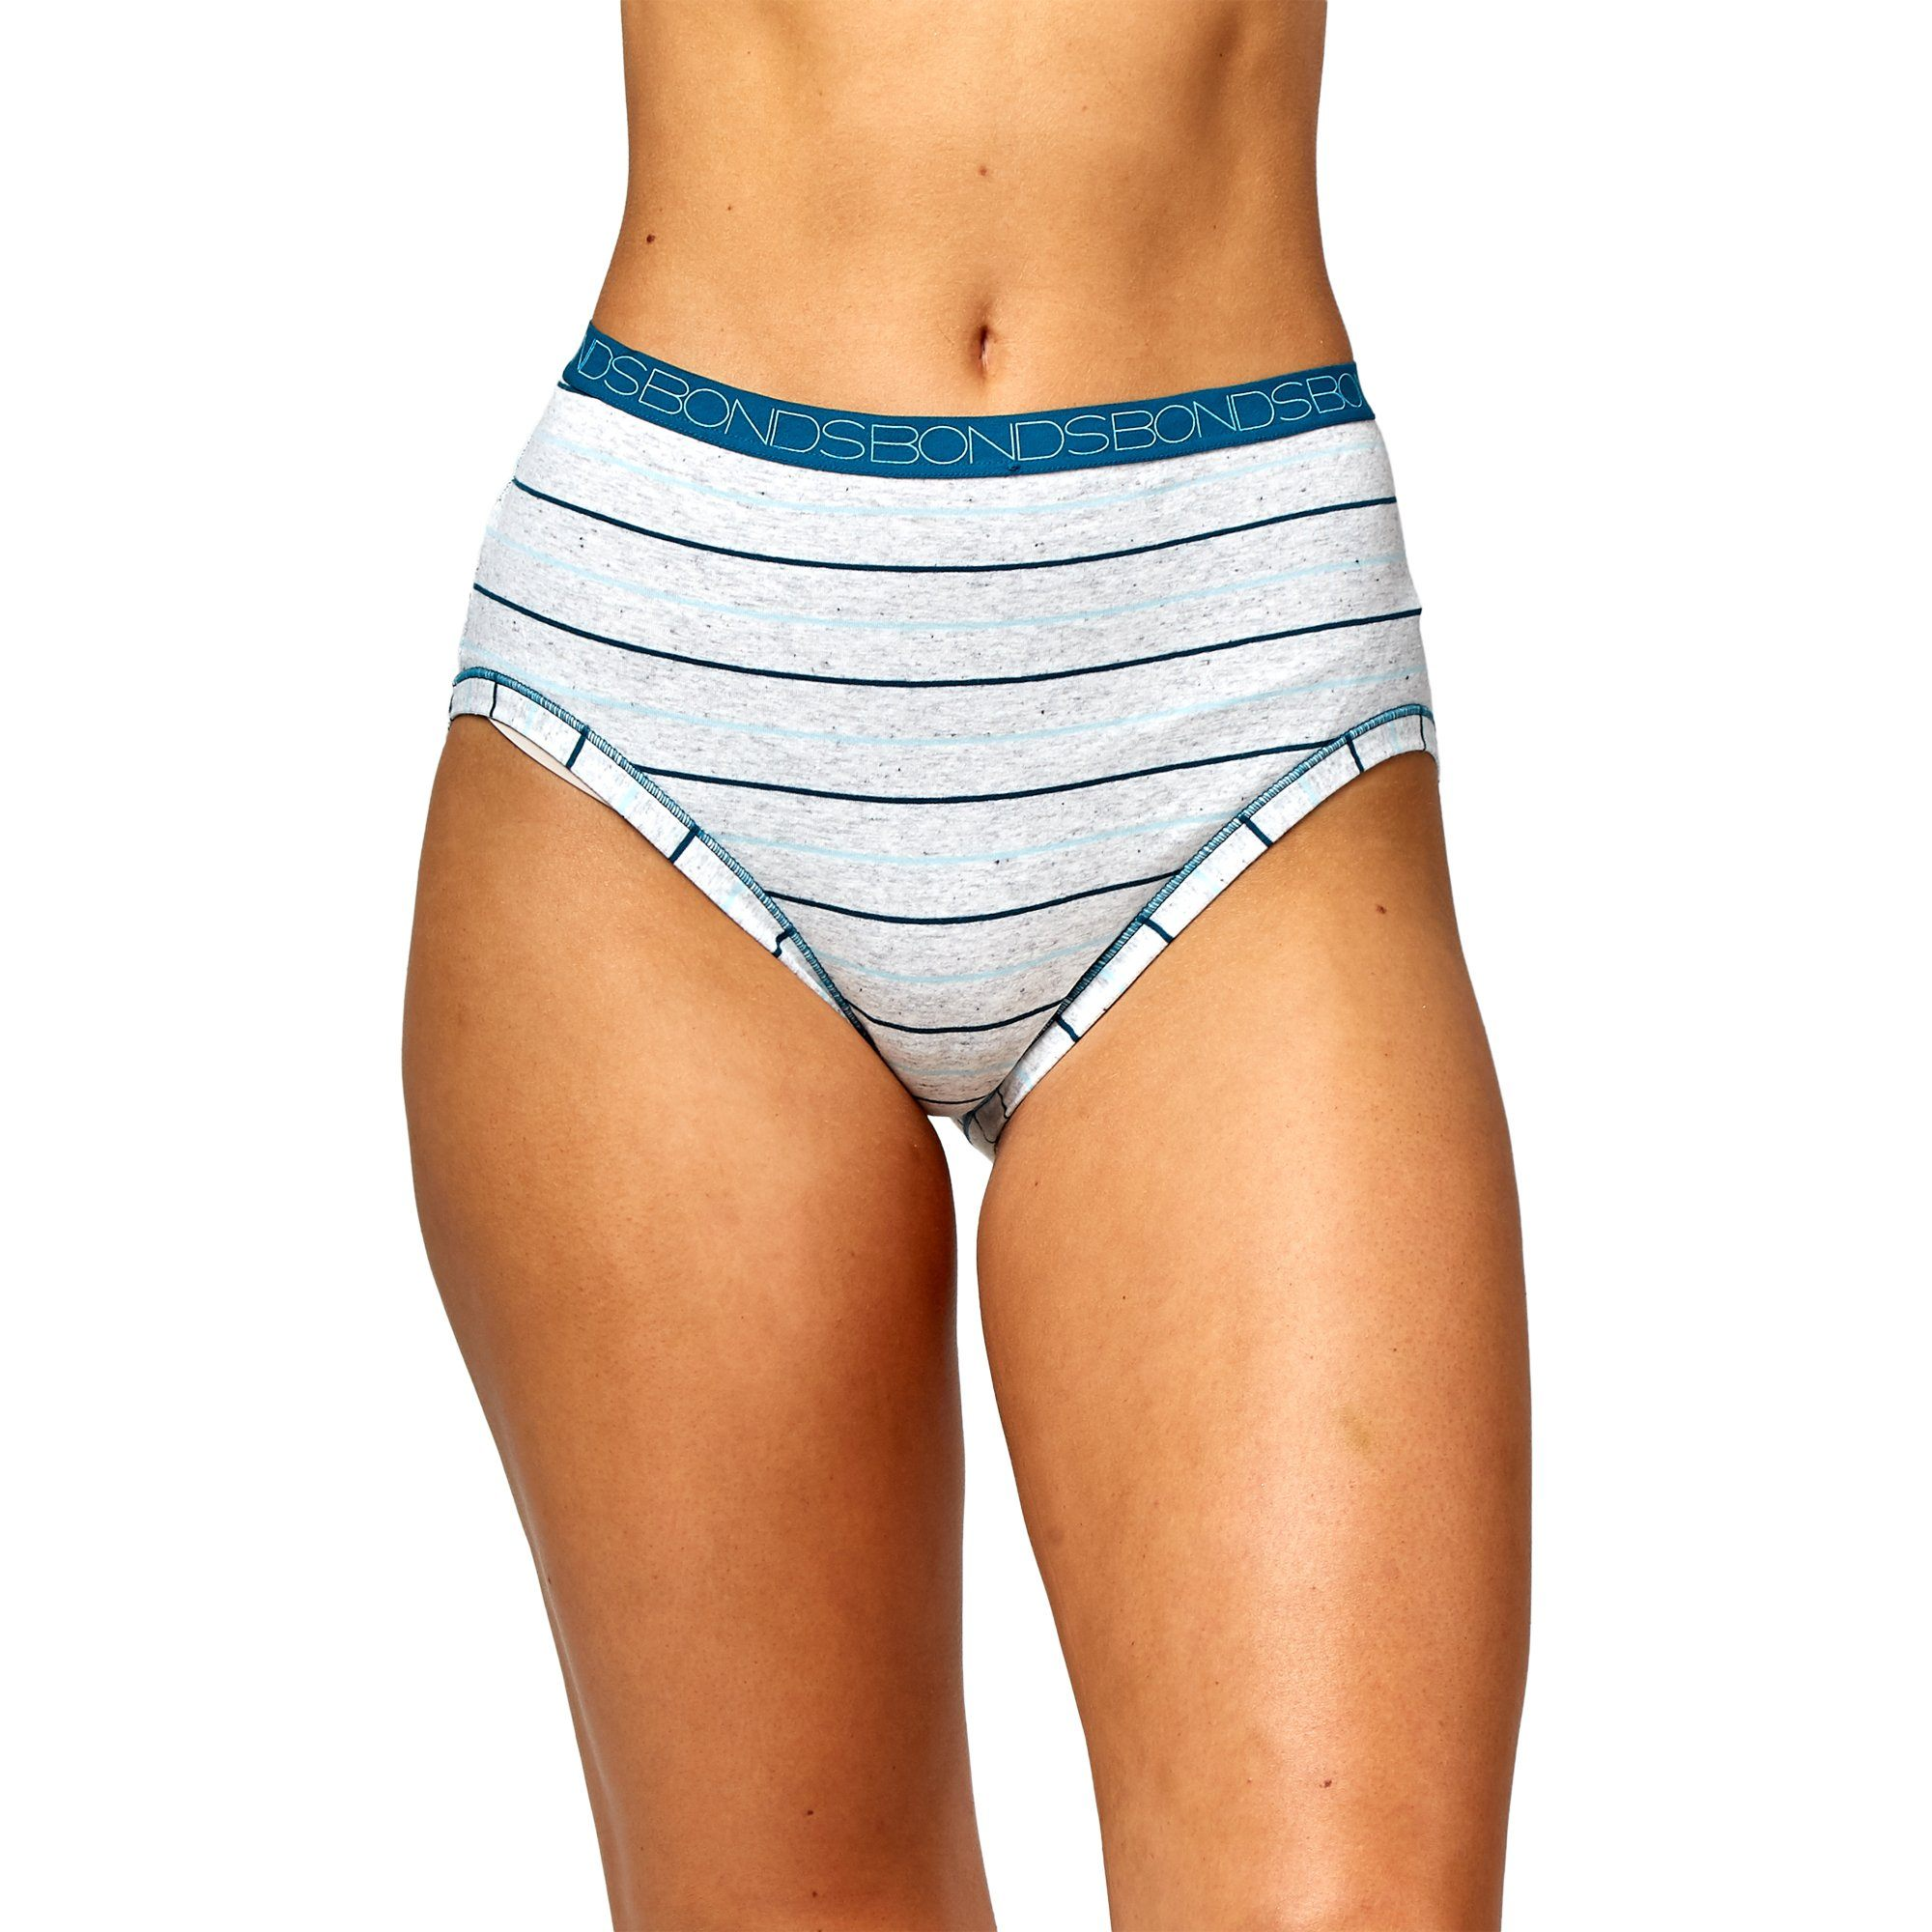 Bonds Women'S Underwear Cottontails Yds F/B - Stripe 15 Women's Underwear Bonds